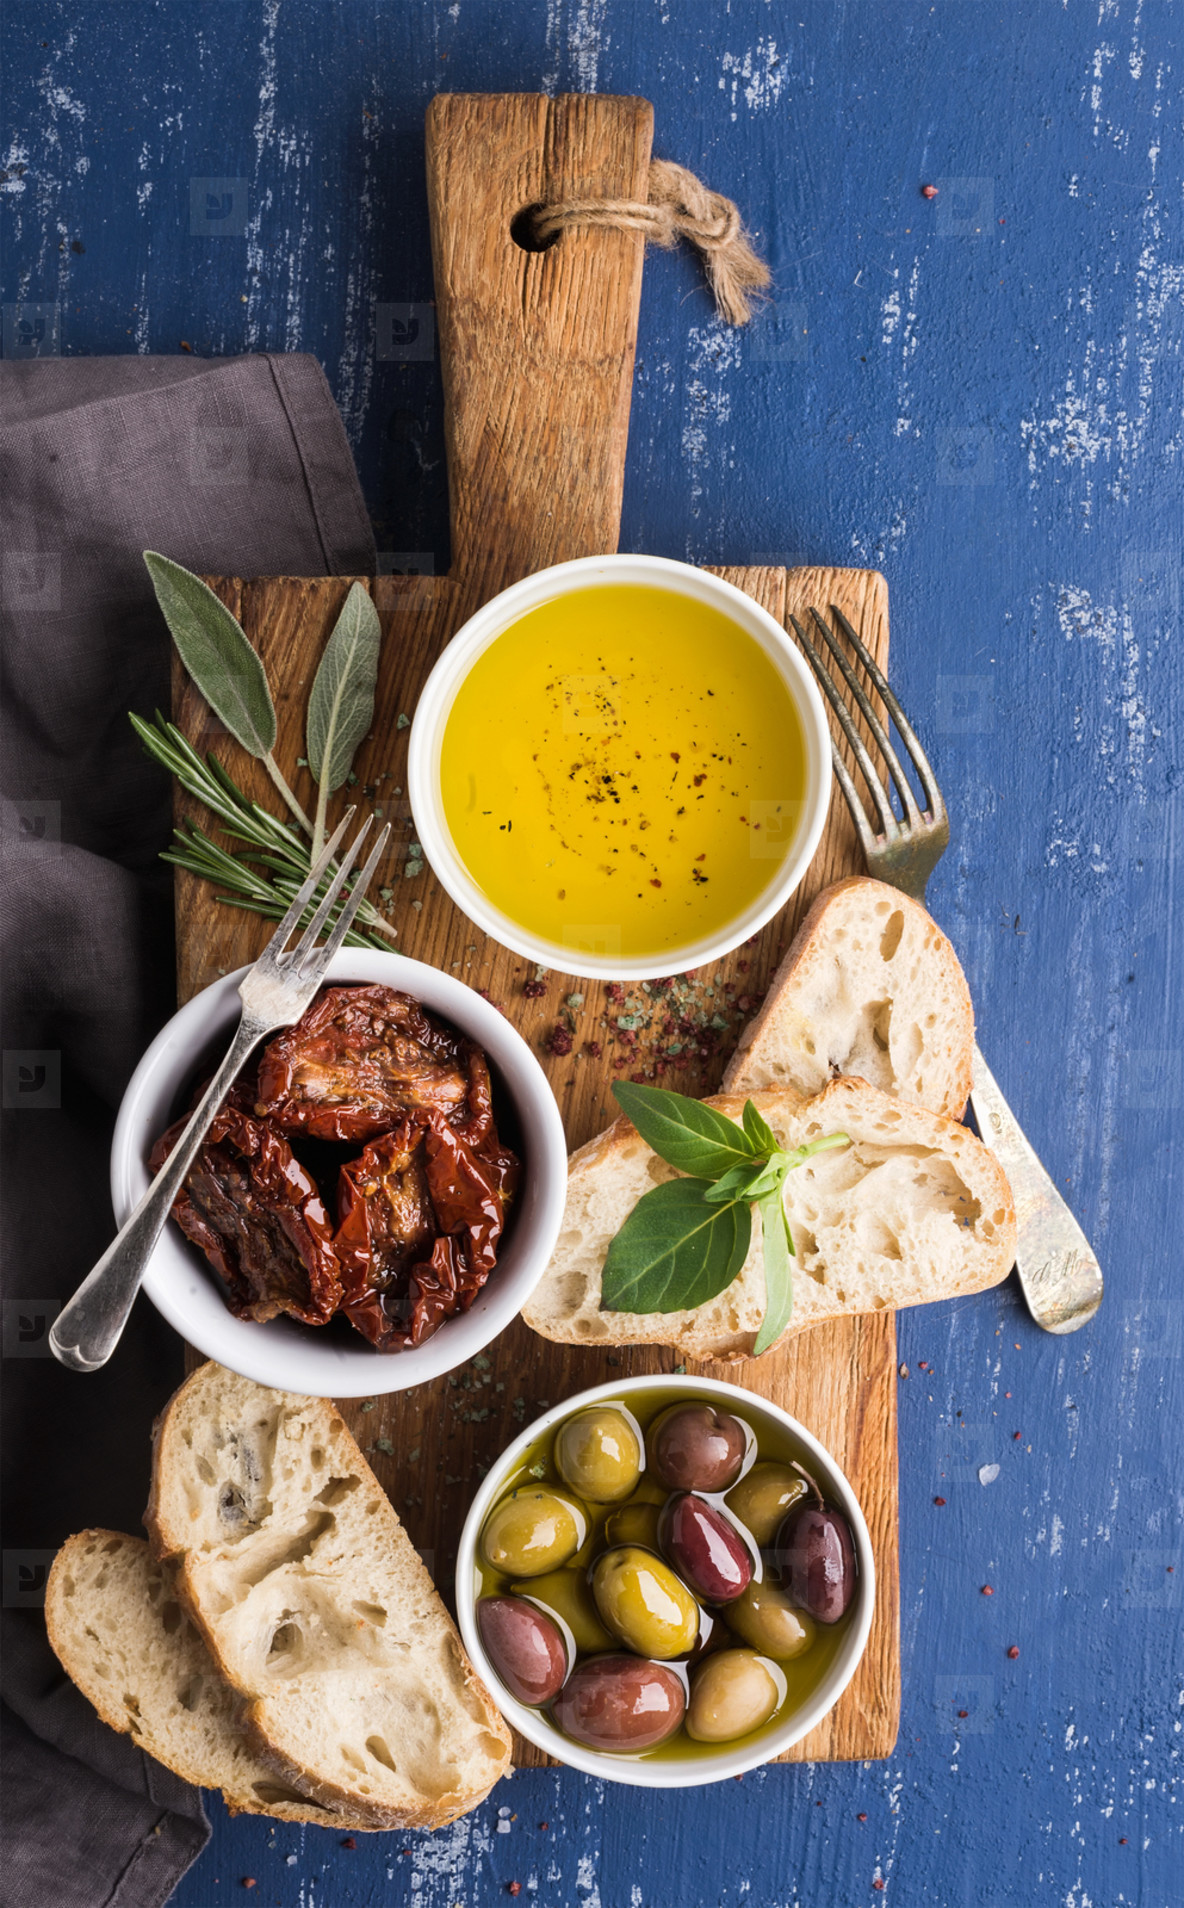 Mediterrane Küche An Bord Mediterranean Snacks Set Olives Oil Herbs And Sliced Ciabatta Bread On Yellow Rustic Oak Board Over Painted Dark Blue Background